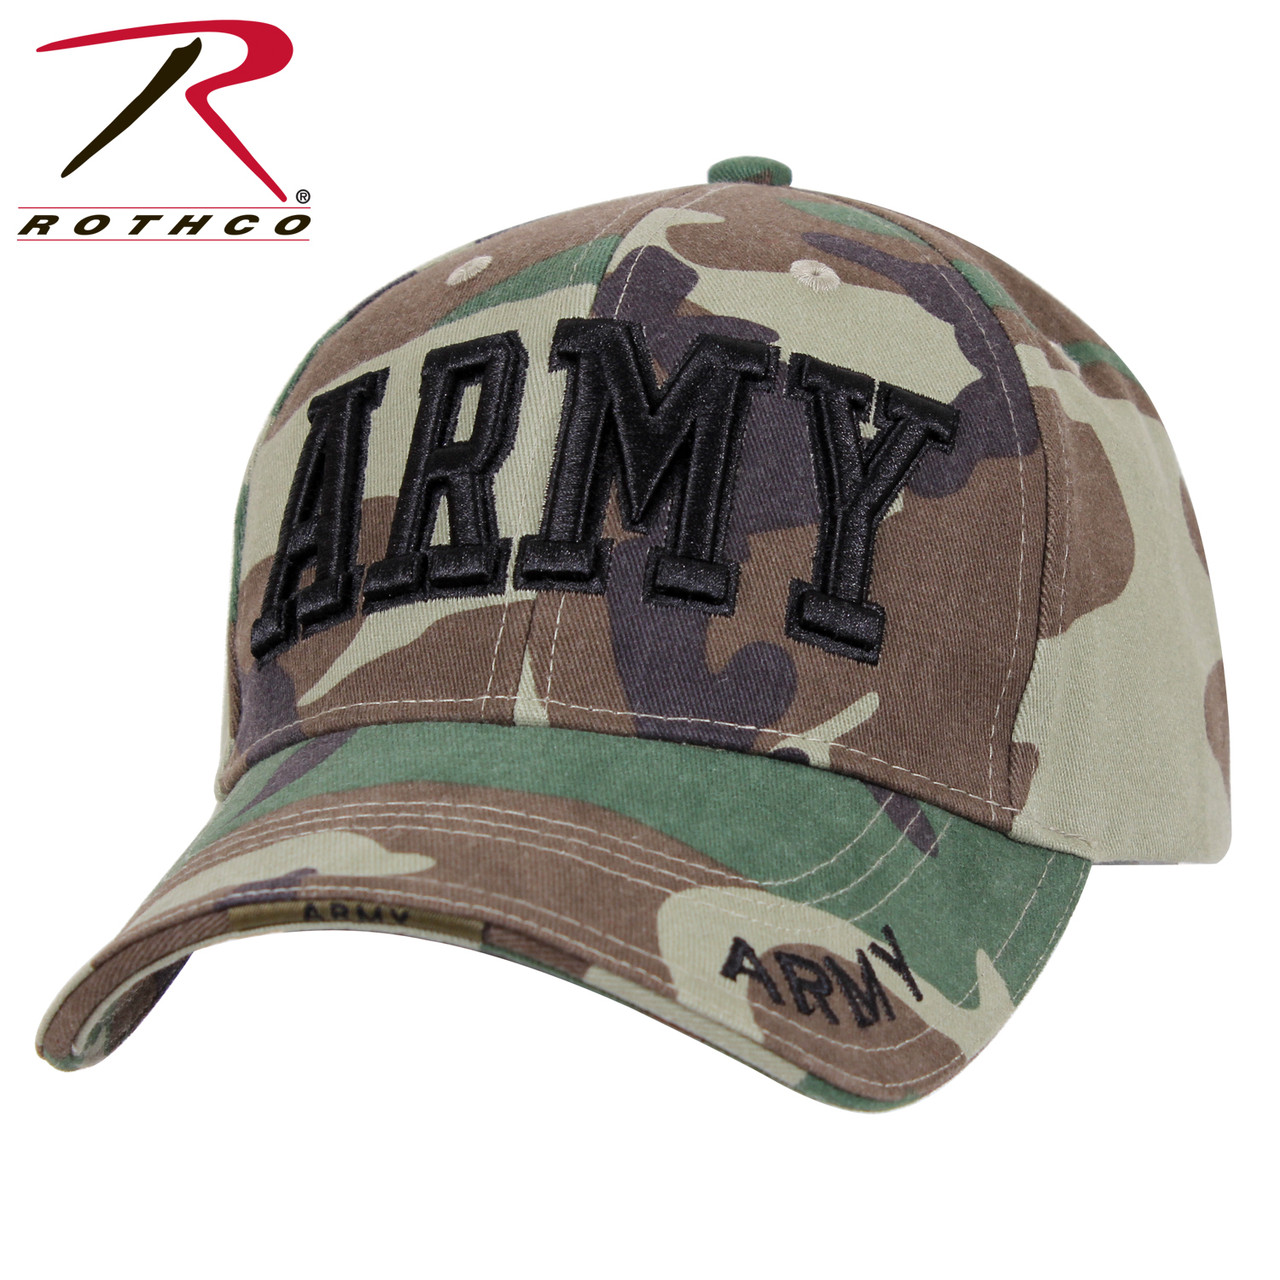 ee22099a4c03b Rothco Deluxe Army Cap Embroidered Insignia Low Profile (Item  3908) -  Woodland Camo ...